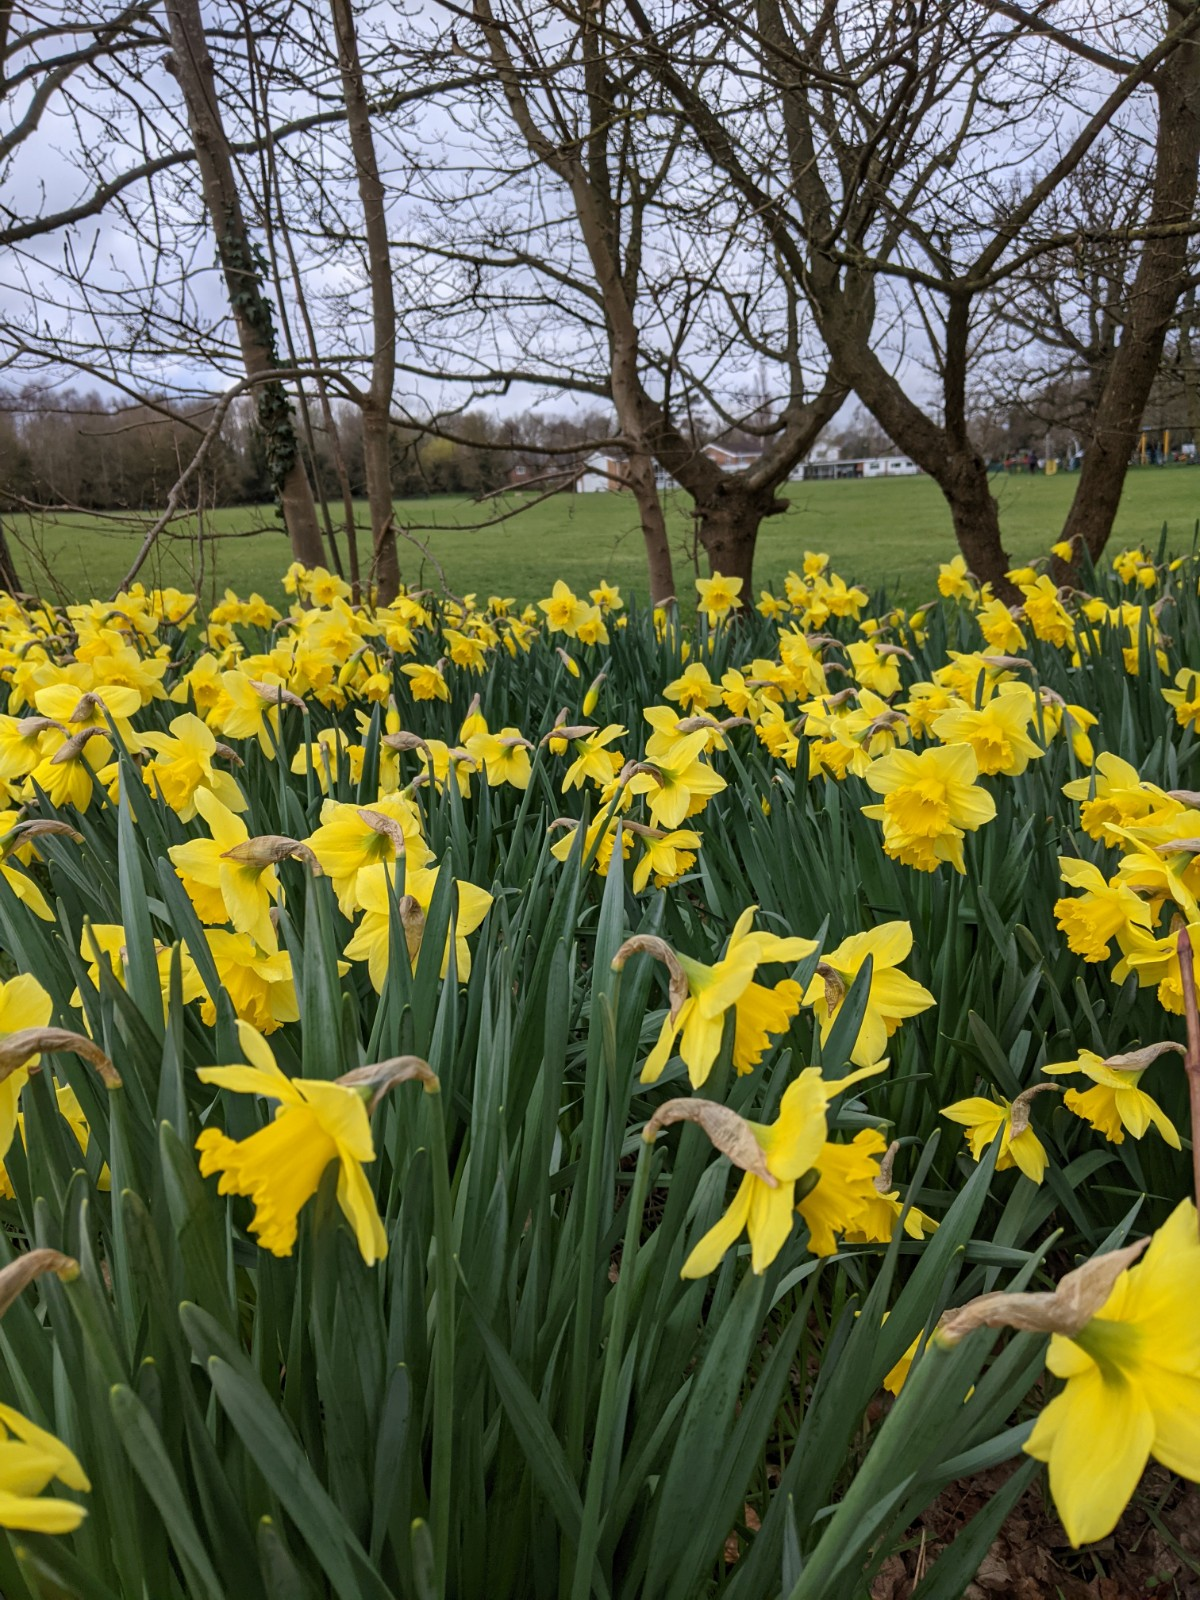 Daffodils at Bearwood Recreation Ground